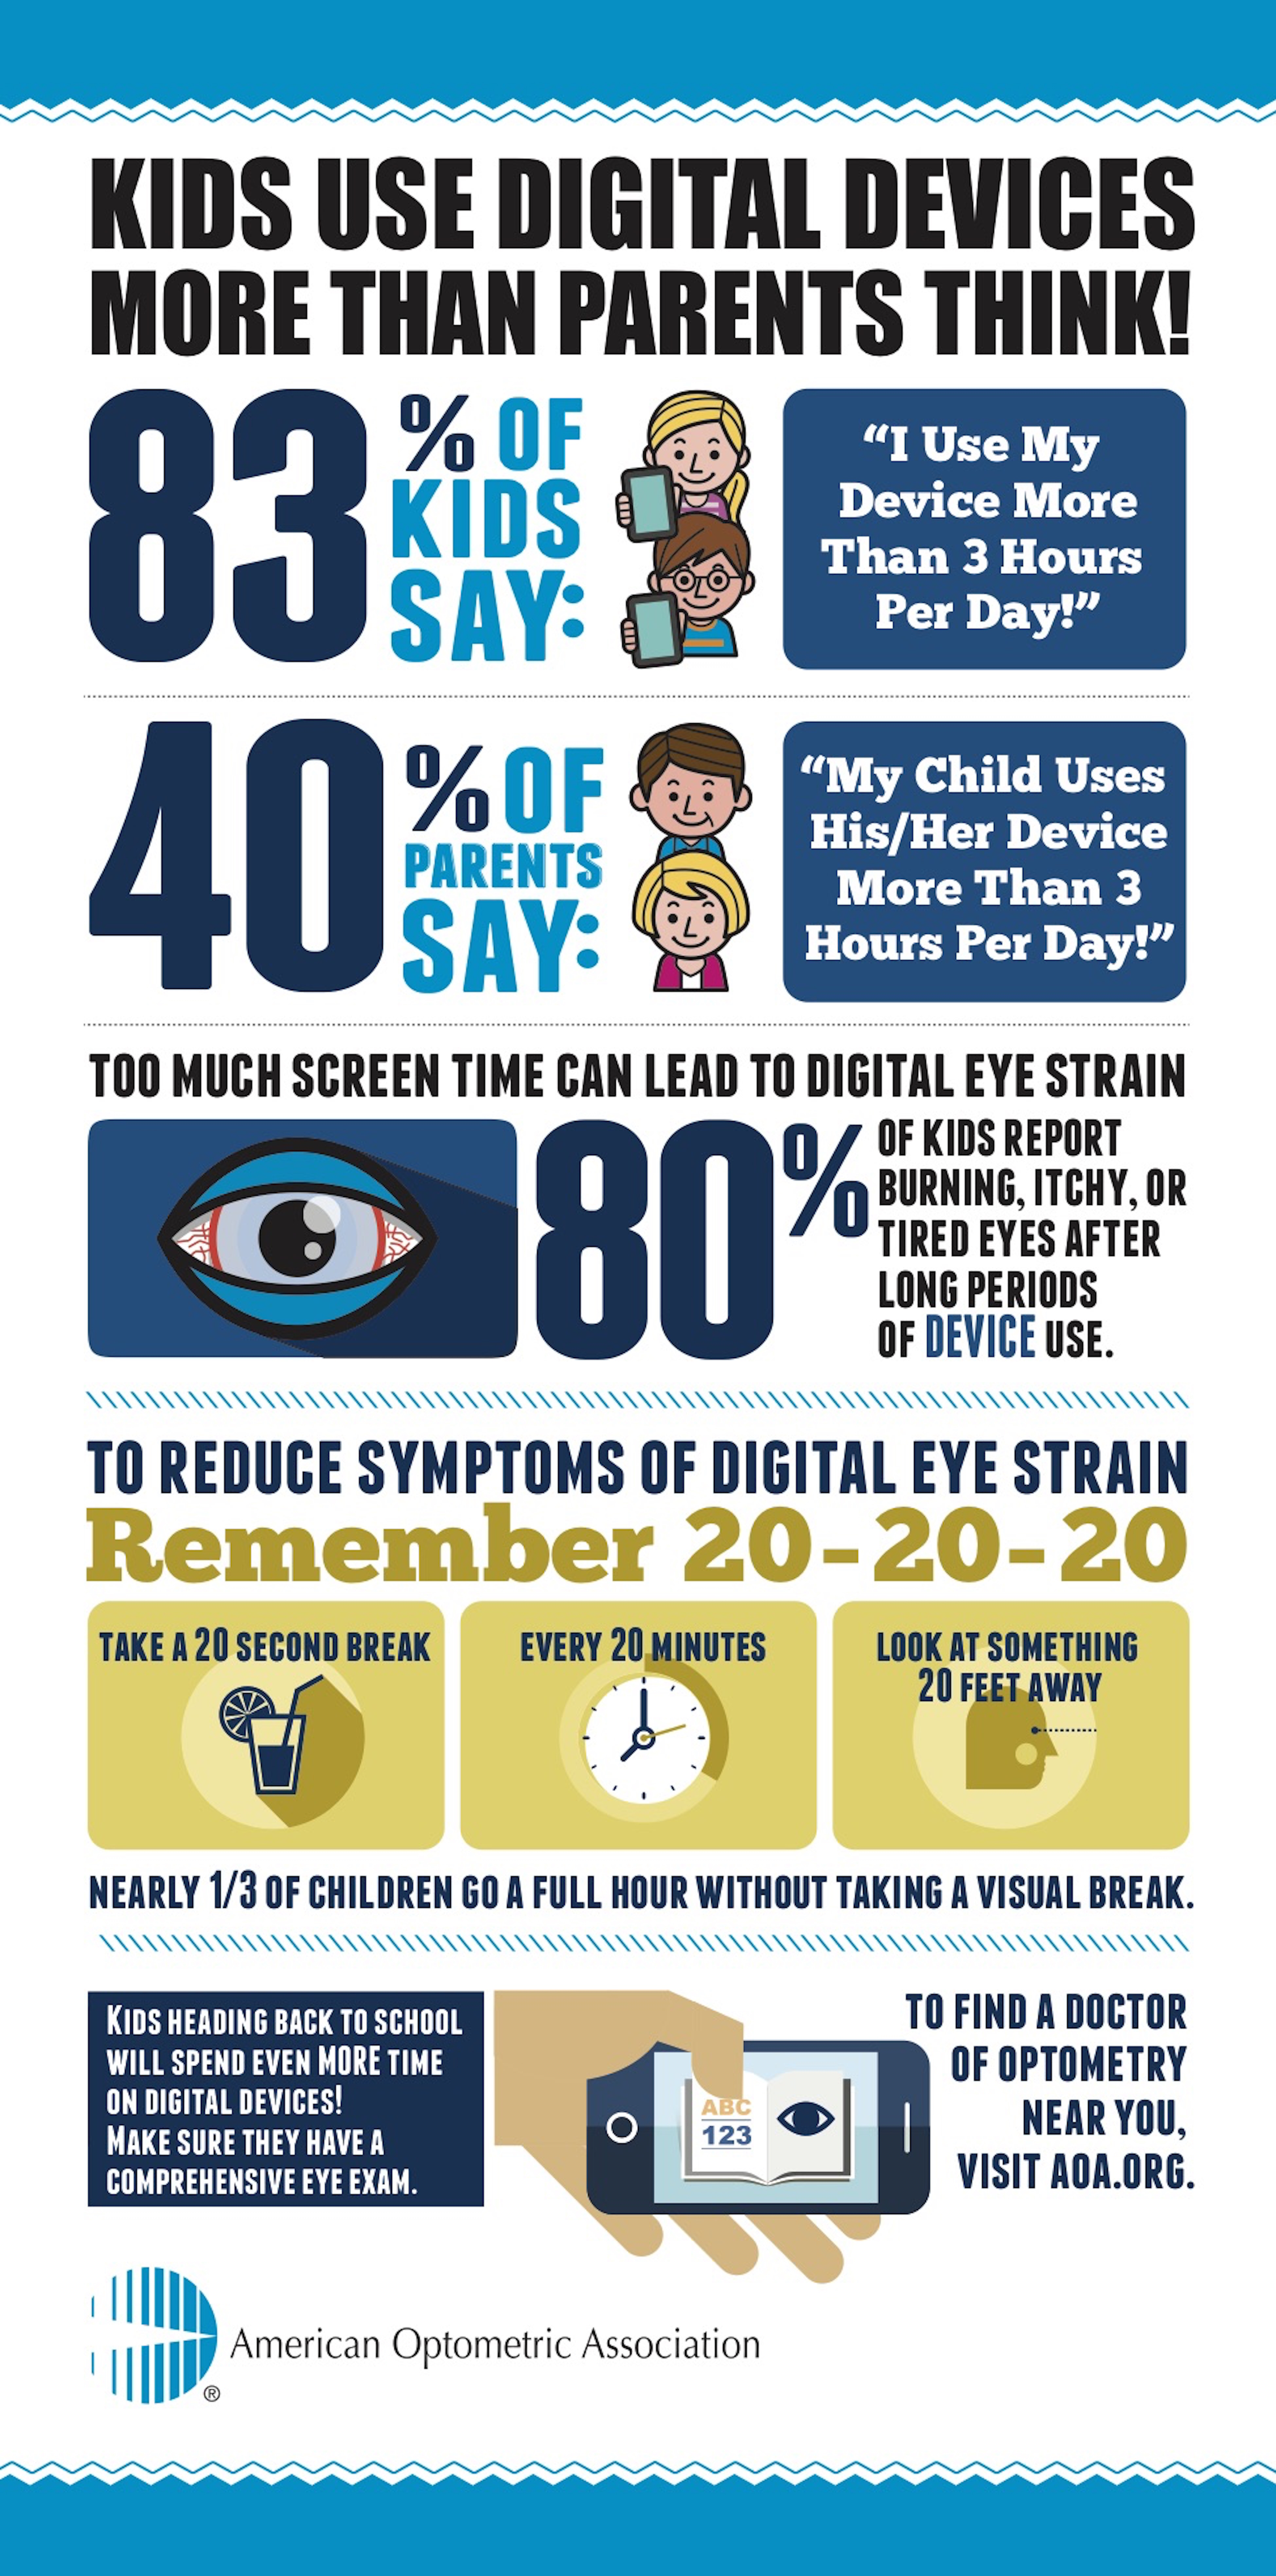 AOA_Back To School Digital_Devices_infographic (1) 2 jpg